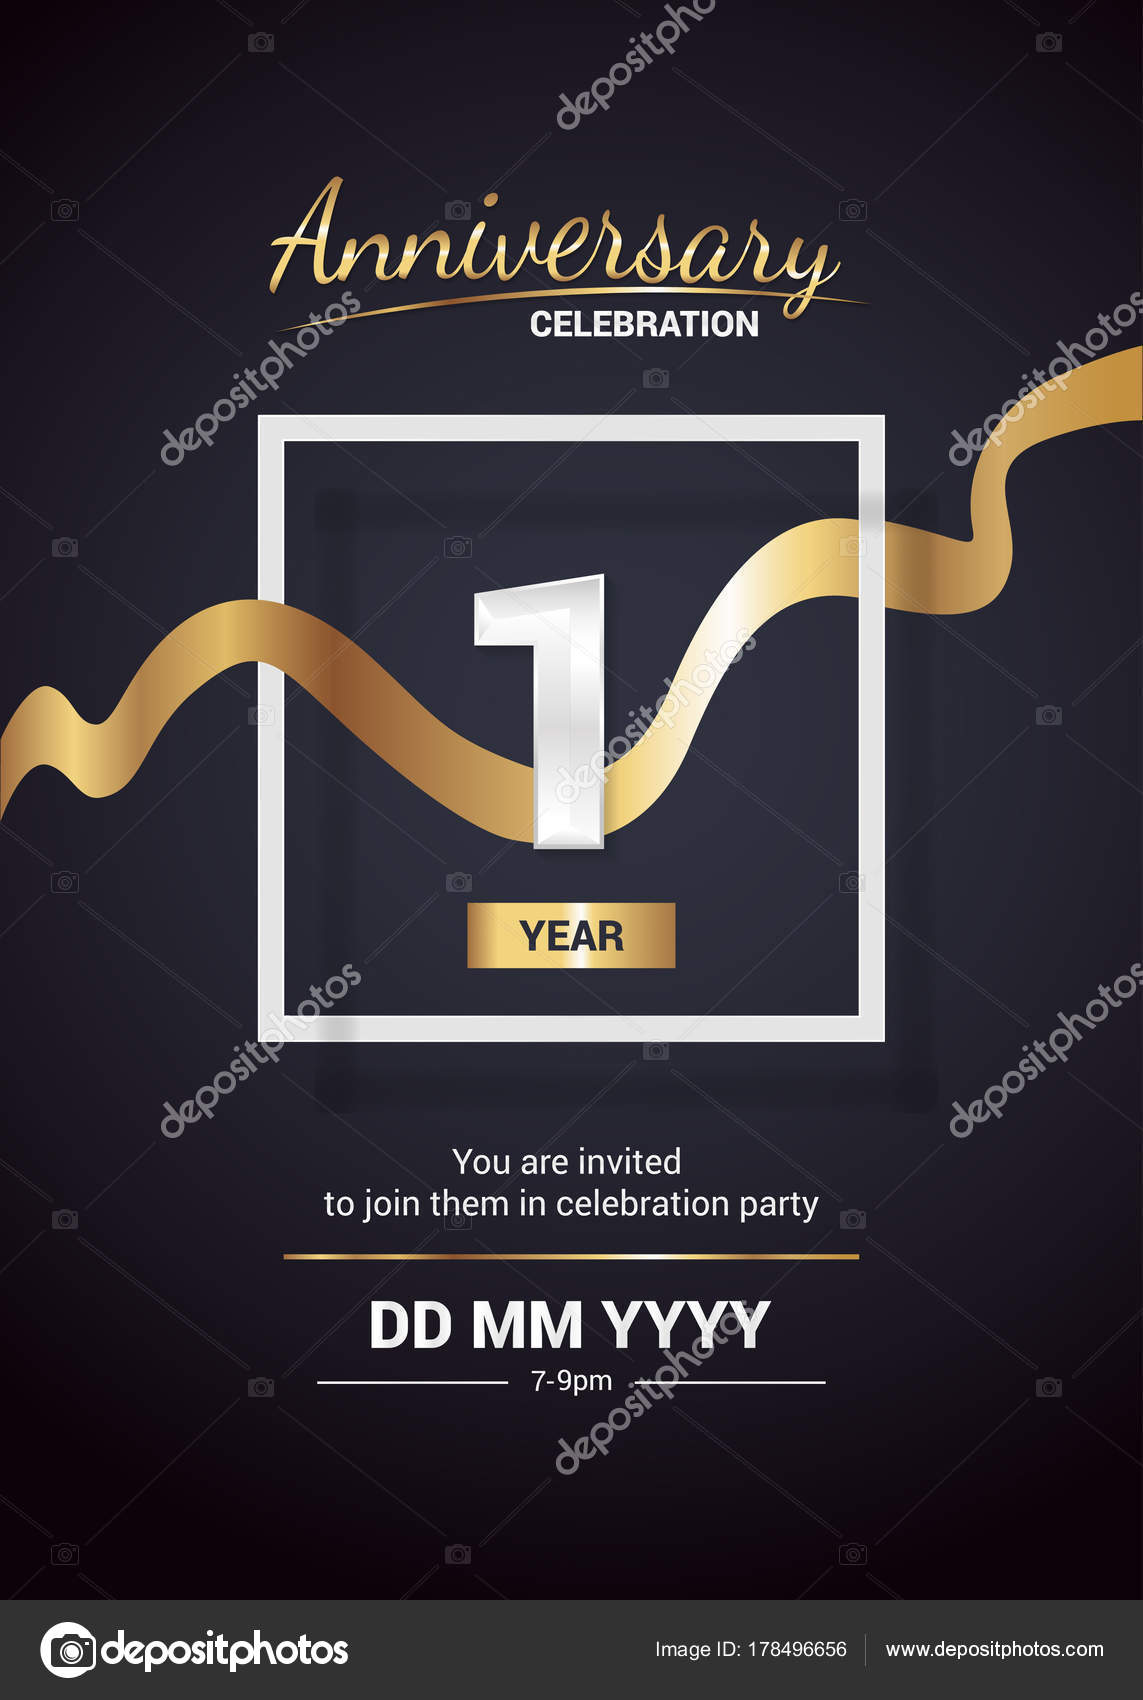 Year anniversary logo celebration invitation card gold ribbon vector 1 year anniversary logo celebration and invitation card with gold ribbon vector illustration on dark background vector by seklihermantaputragmail stopboris Image collections